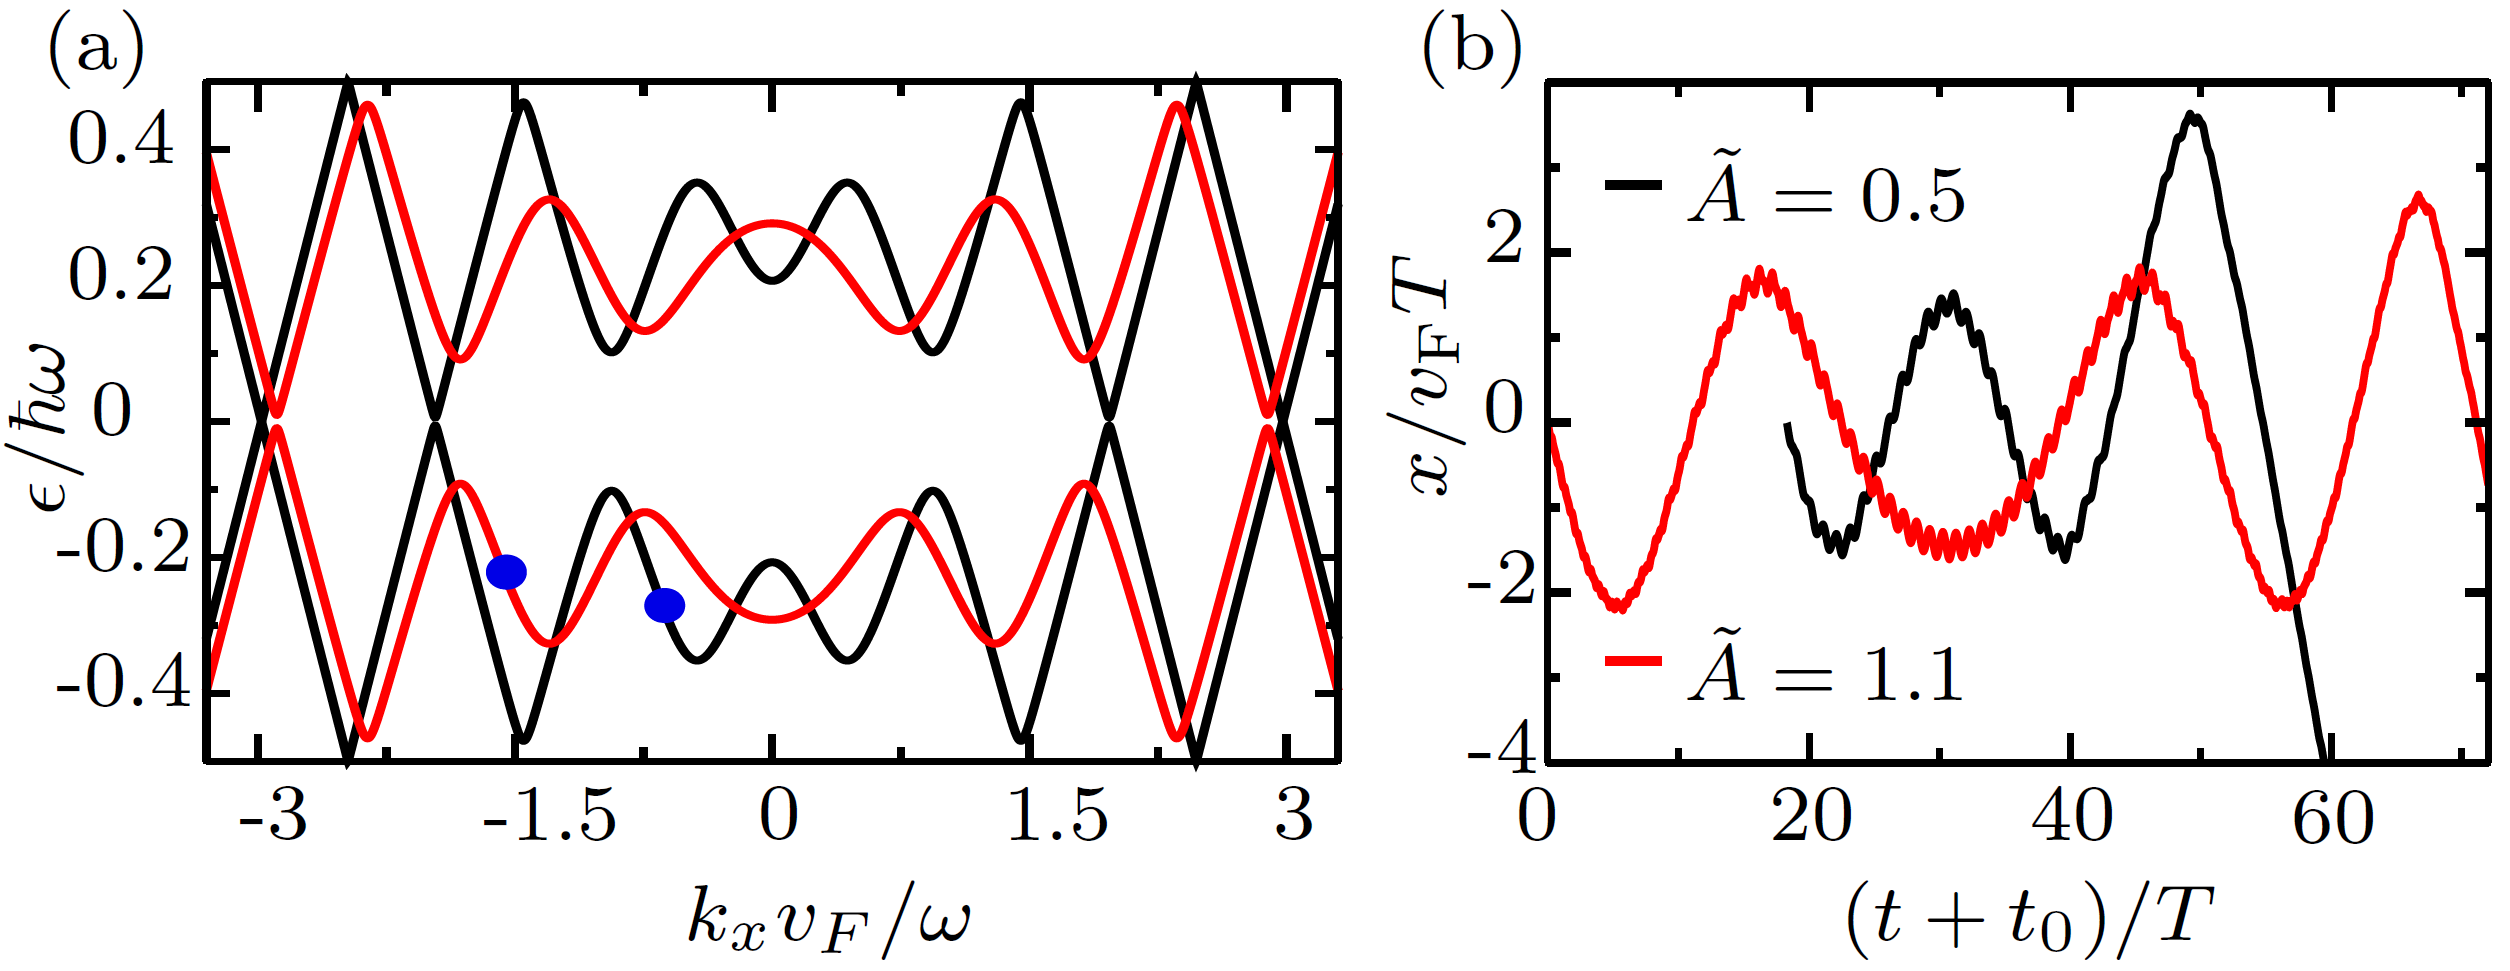 (a) Floquet bands of a Dirac system illuminated with circularly polarized light with scaled amplitude